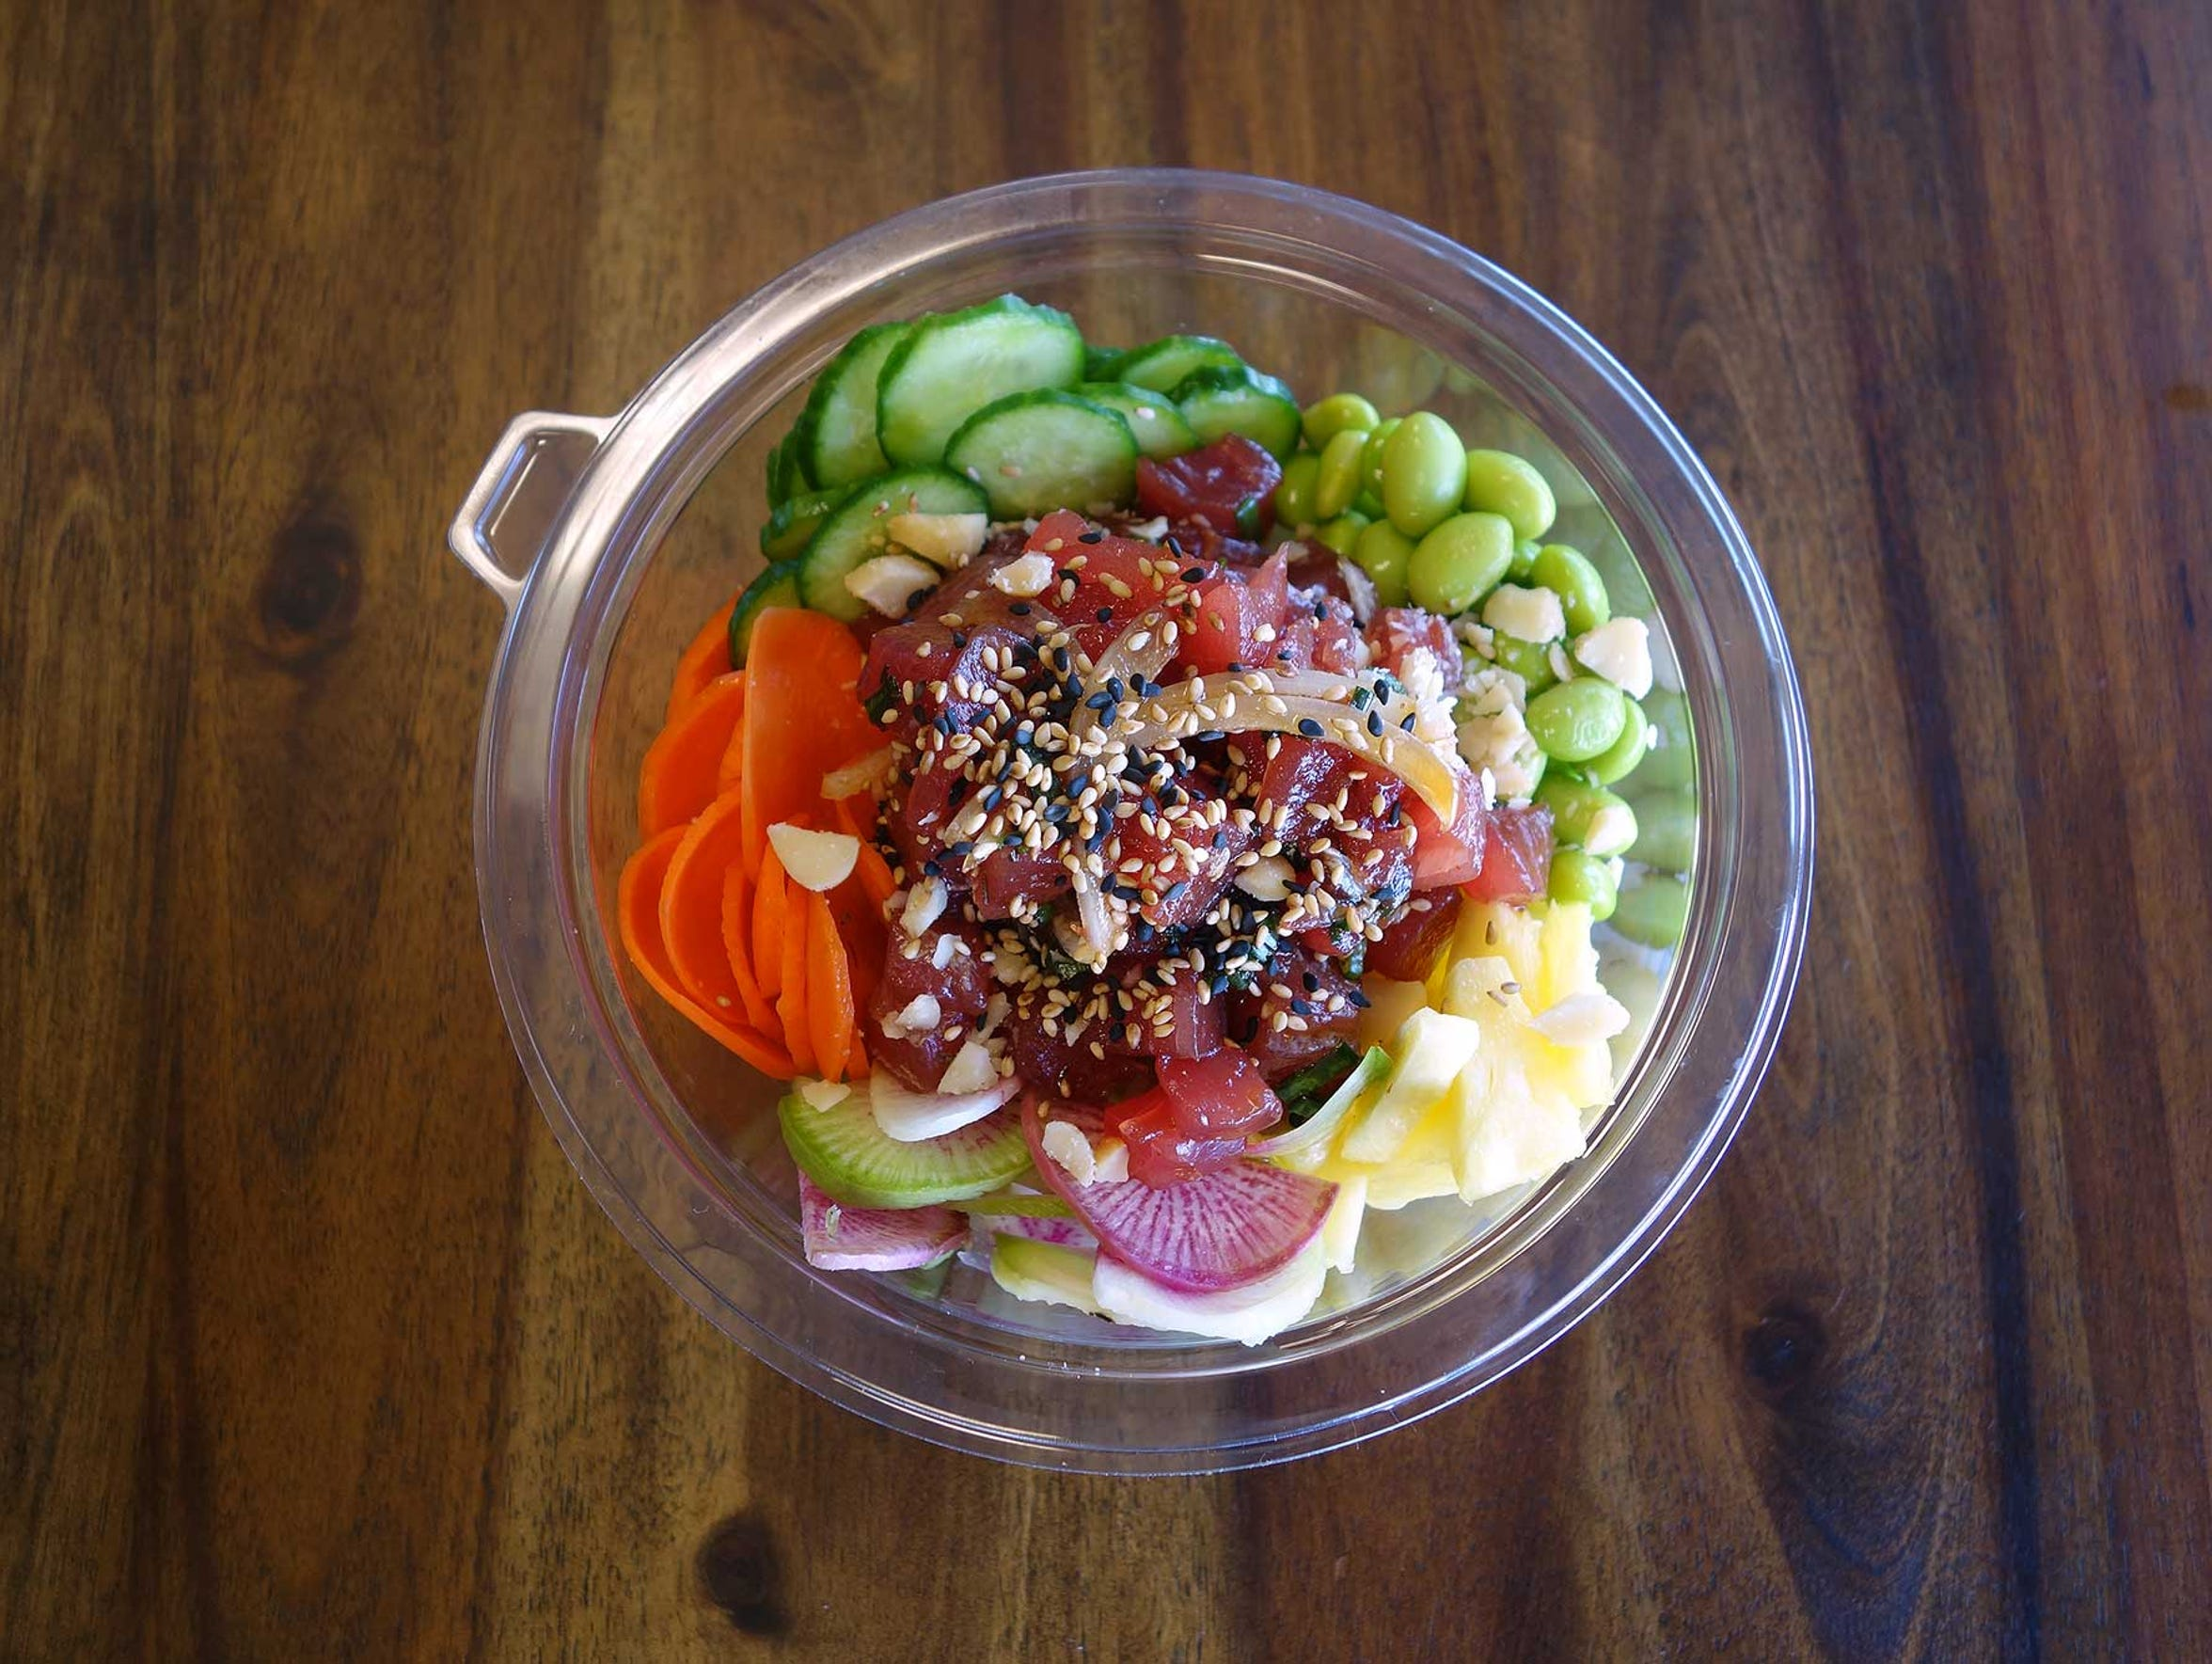 Near Tempe Marketplace is Jon Heflin, Hogan Jamison and Juan Zamora's fish counter slash poke shop where you'll find killer raw fish and chef Zamora's meticulously crafted sandwich specials.